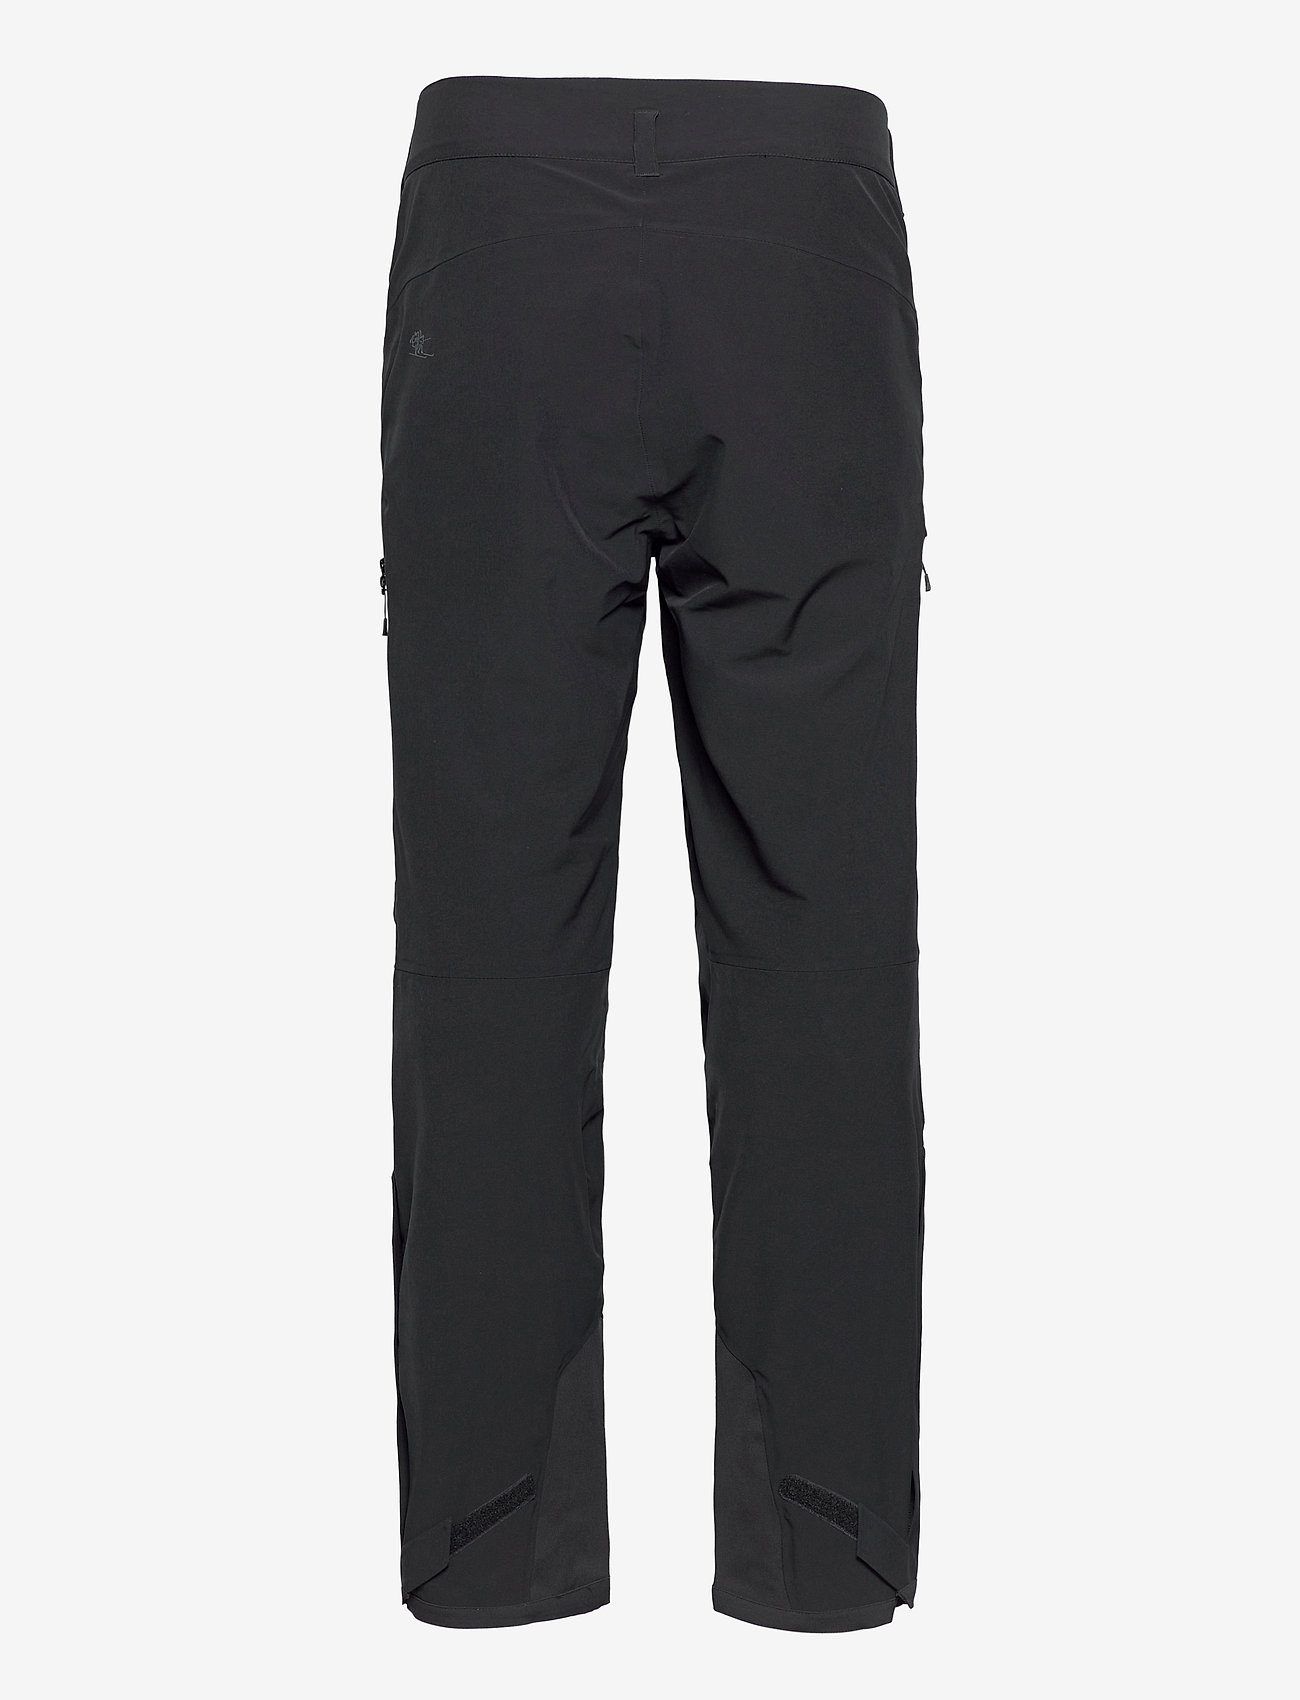 Bergans - Oppdal Pnt - skiing pants - black / solid charcoal - 1